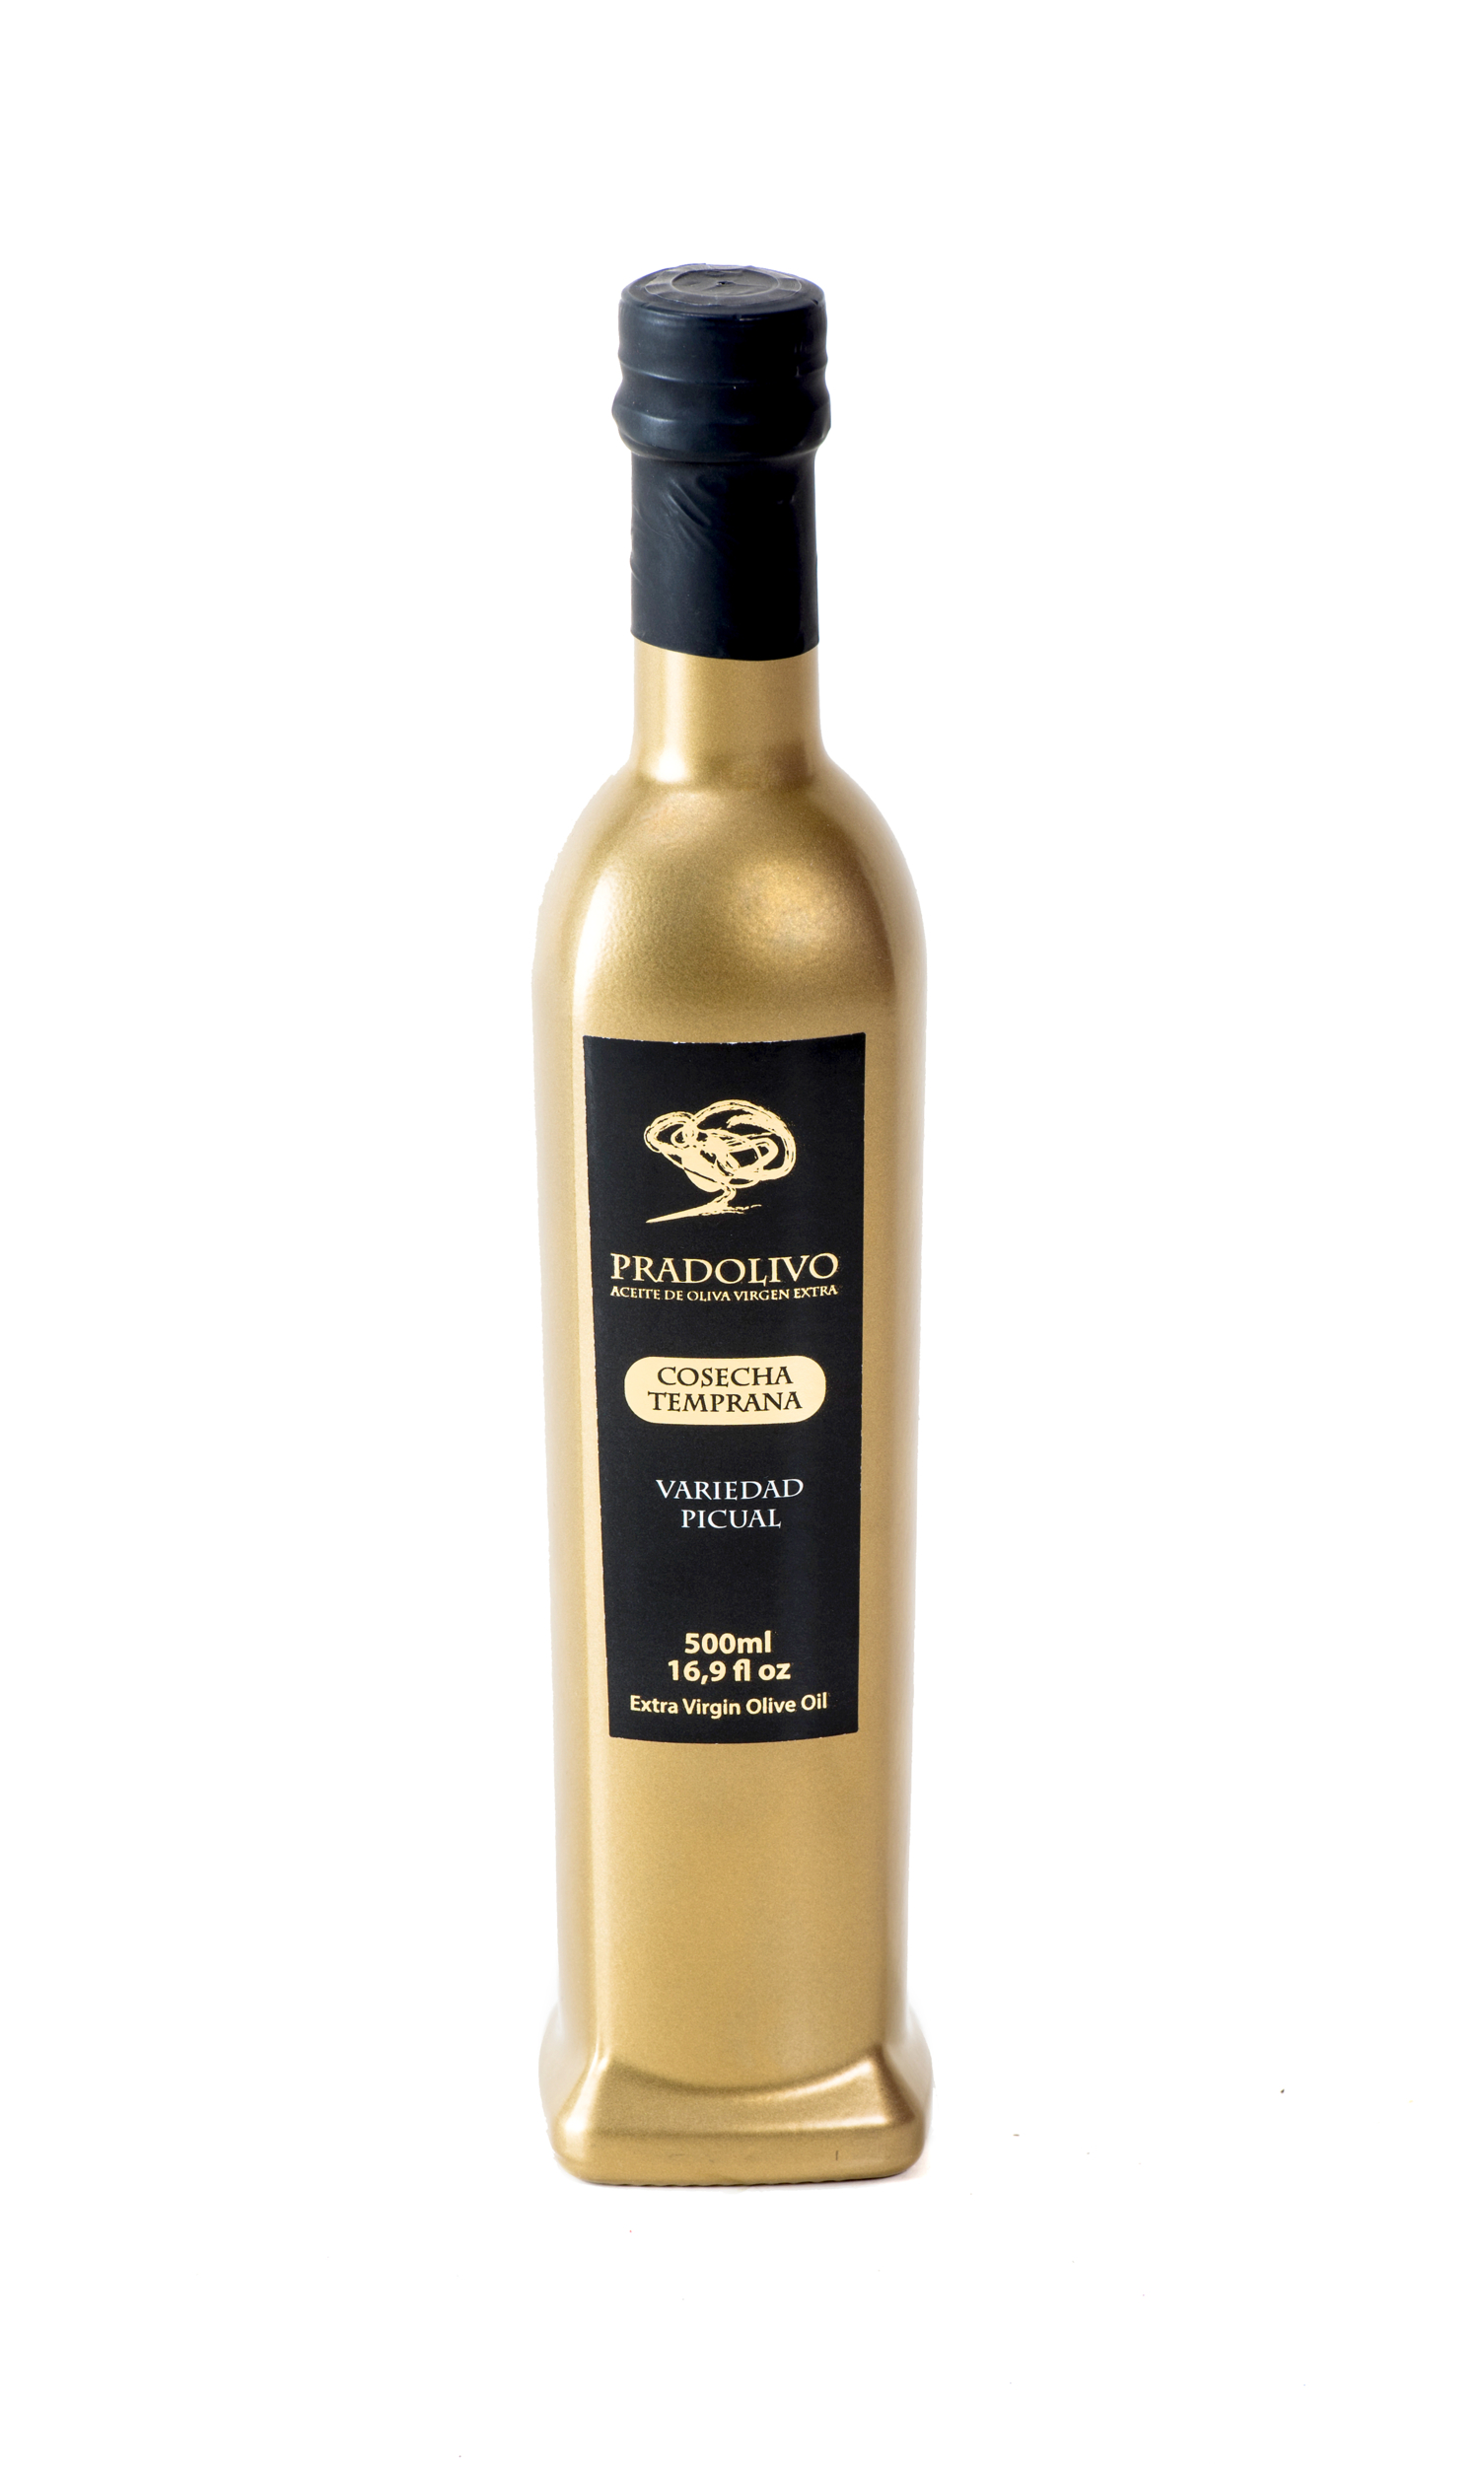 Huile d\' olive extra-vierge Pradolivo Picual 500 ml Edition de Luxe Bouteille Dorée